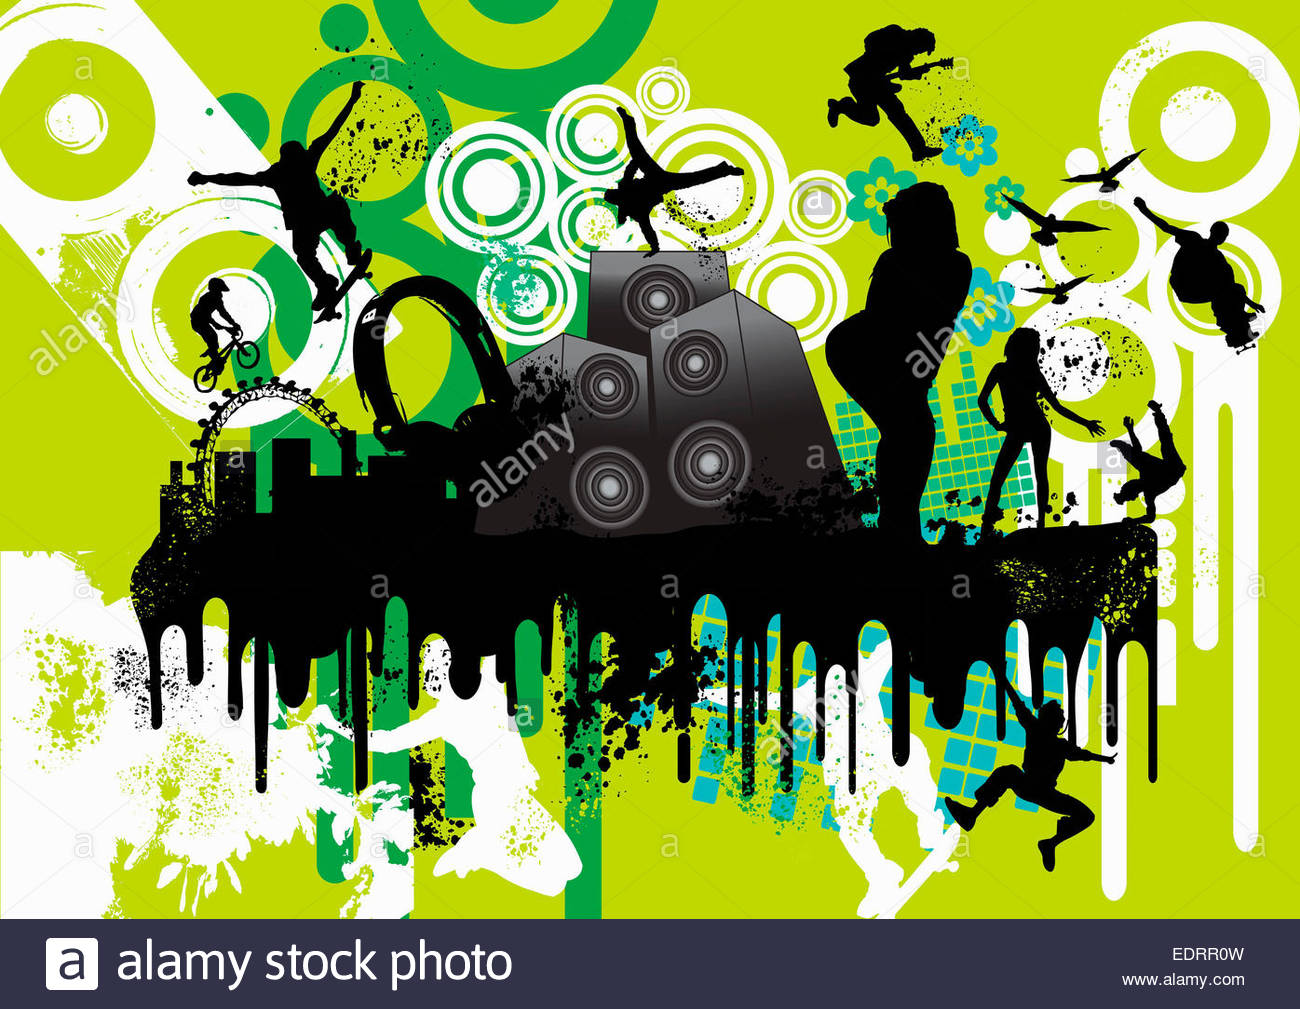 Montage of energetic young people enjoying urban youth culture, music, skateboarding and cycling - Stock Image